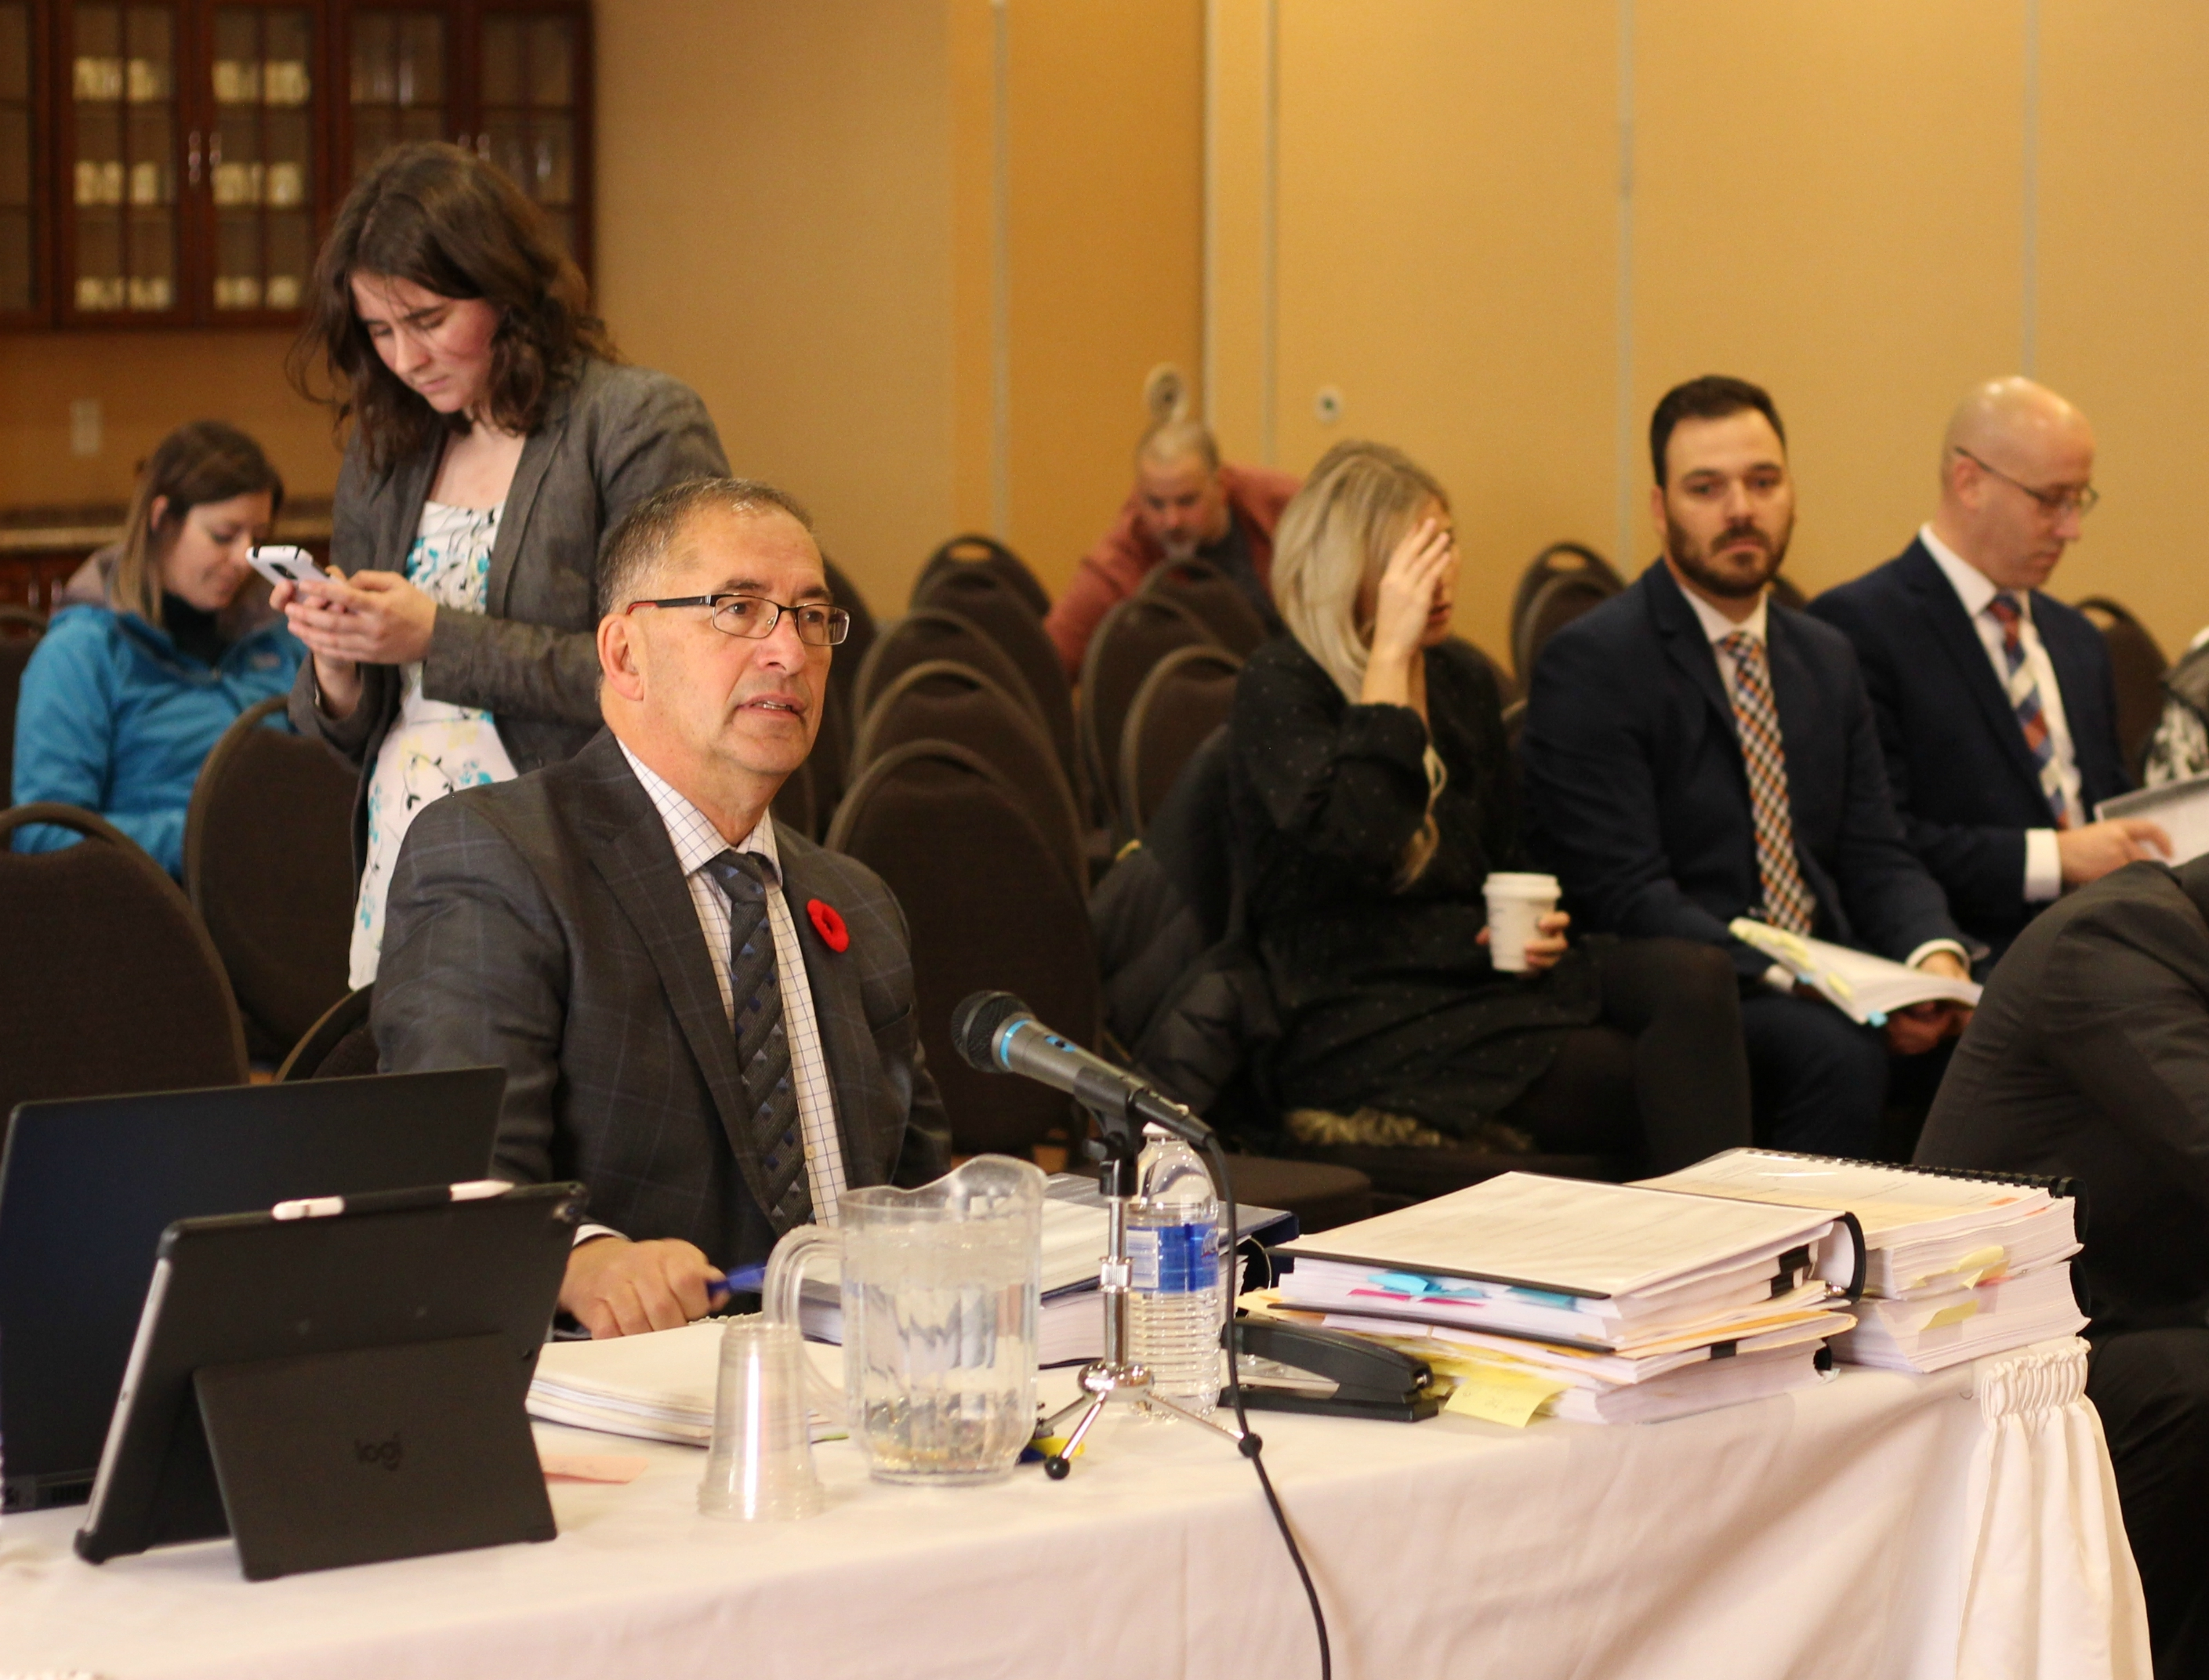 Basile Chiasson, left, is the lawyer representing the Bathurst police chief in a discipline hearing for the two officers. (Shane Magee/CBC)